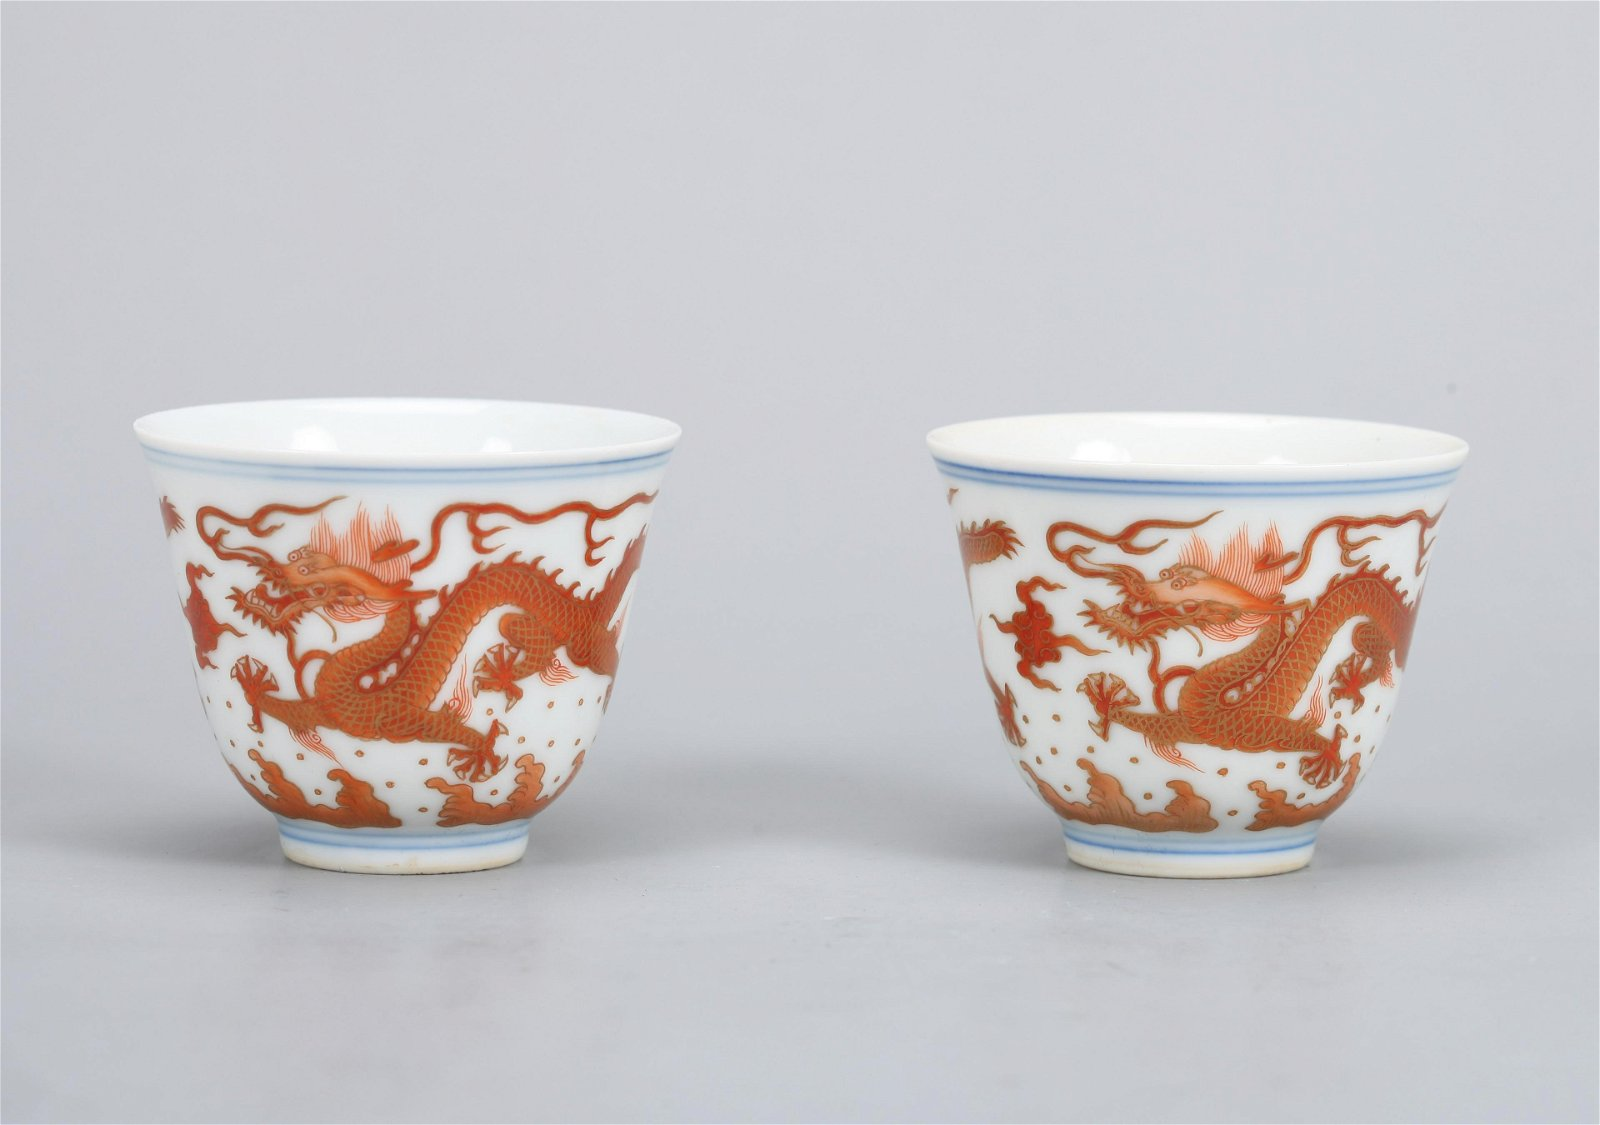 A PAIR OF CHINESE GILT-DECORATED IRON-RED CUPS,